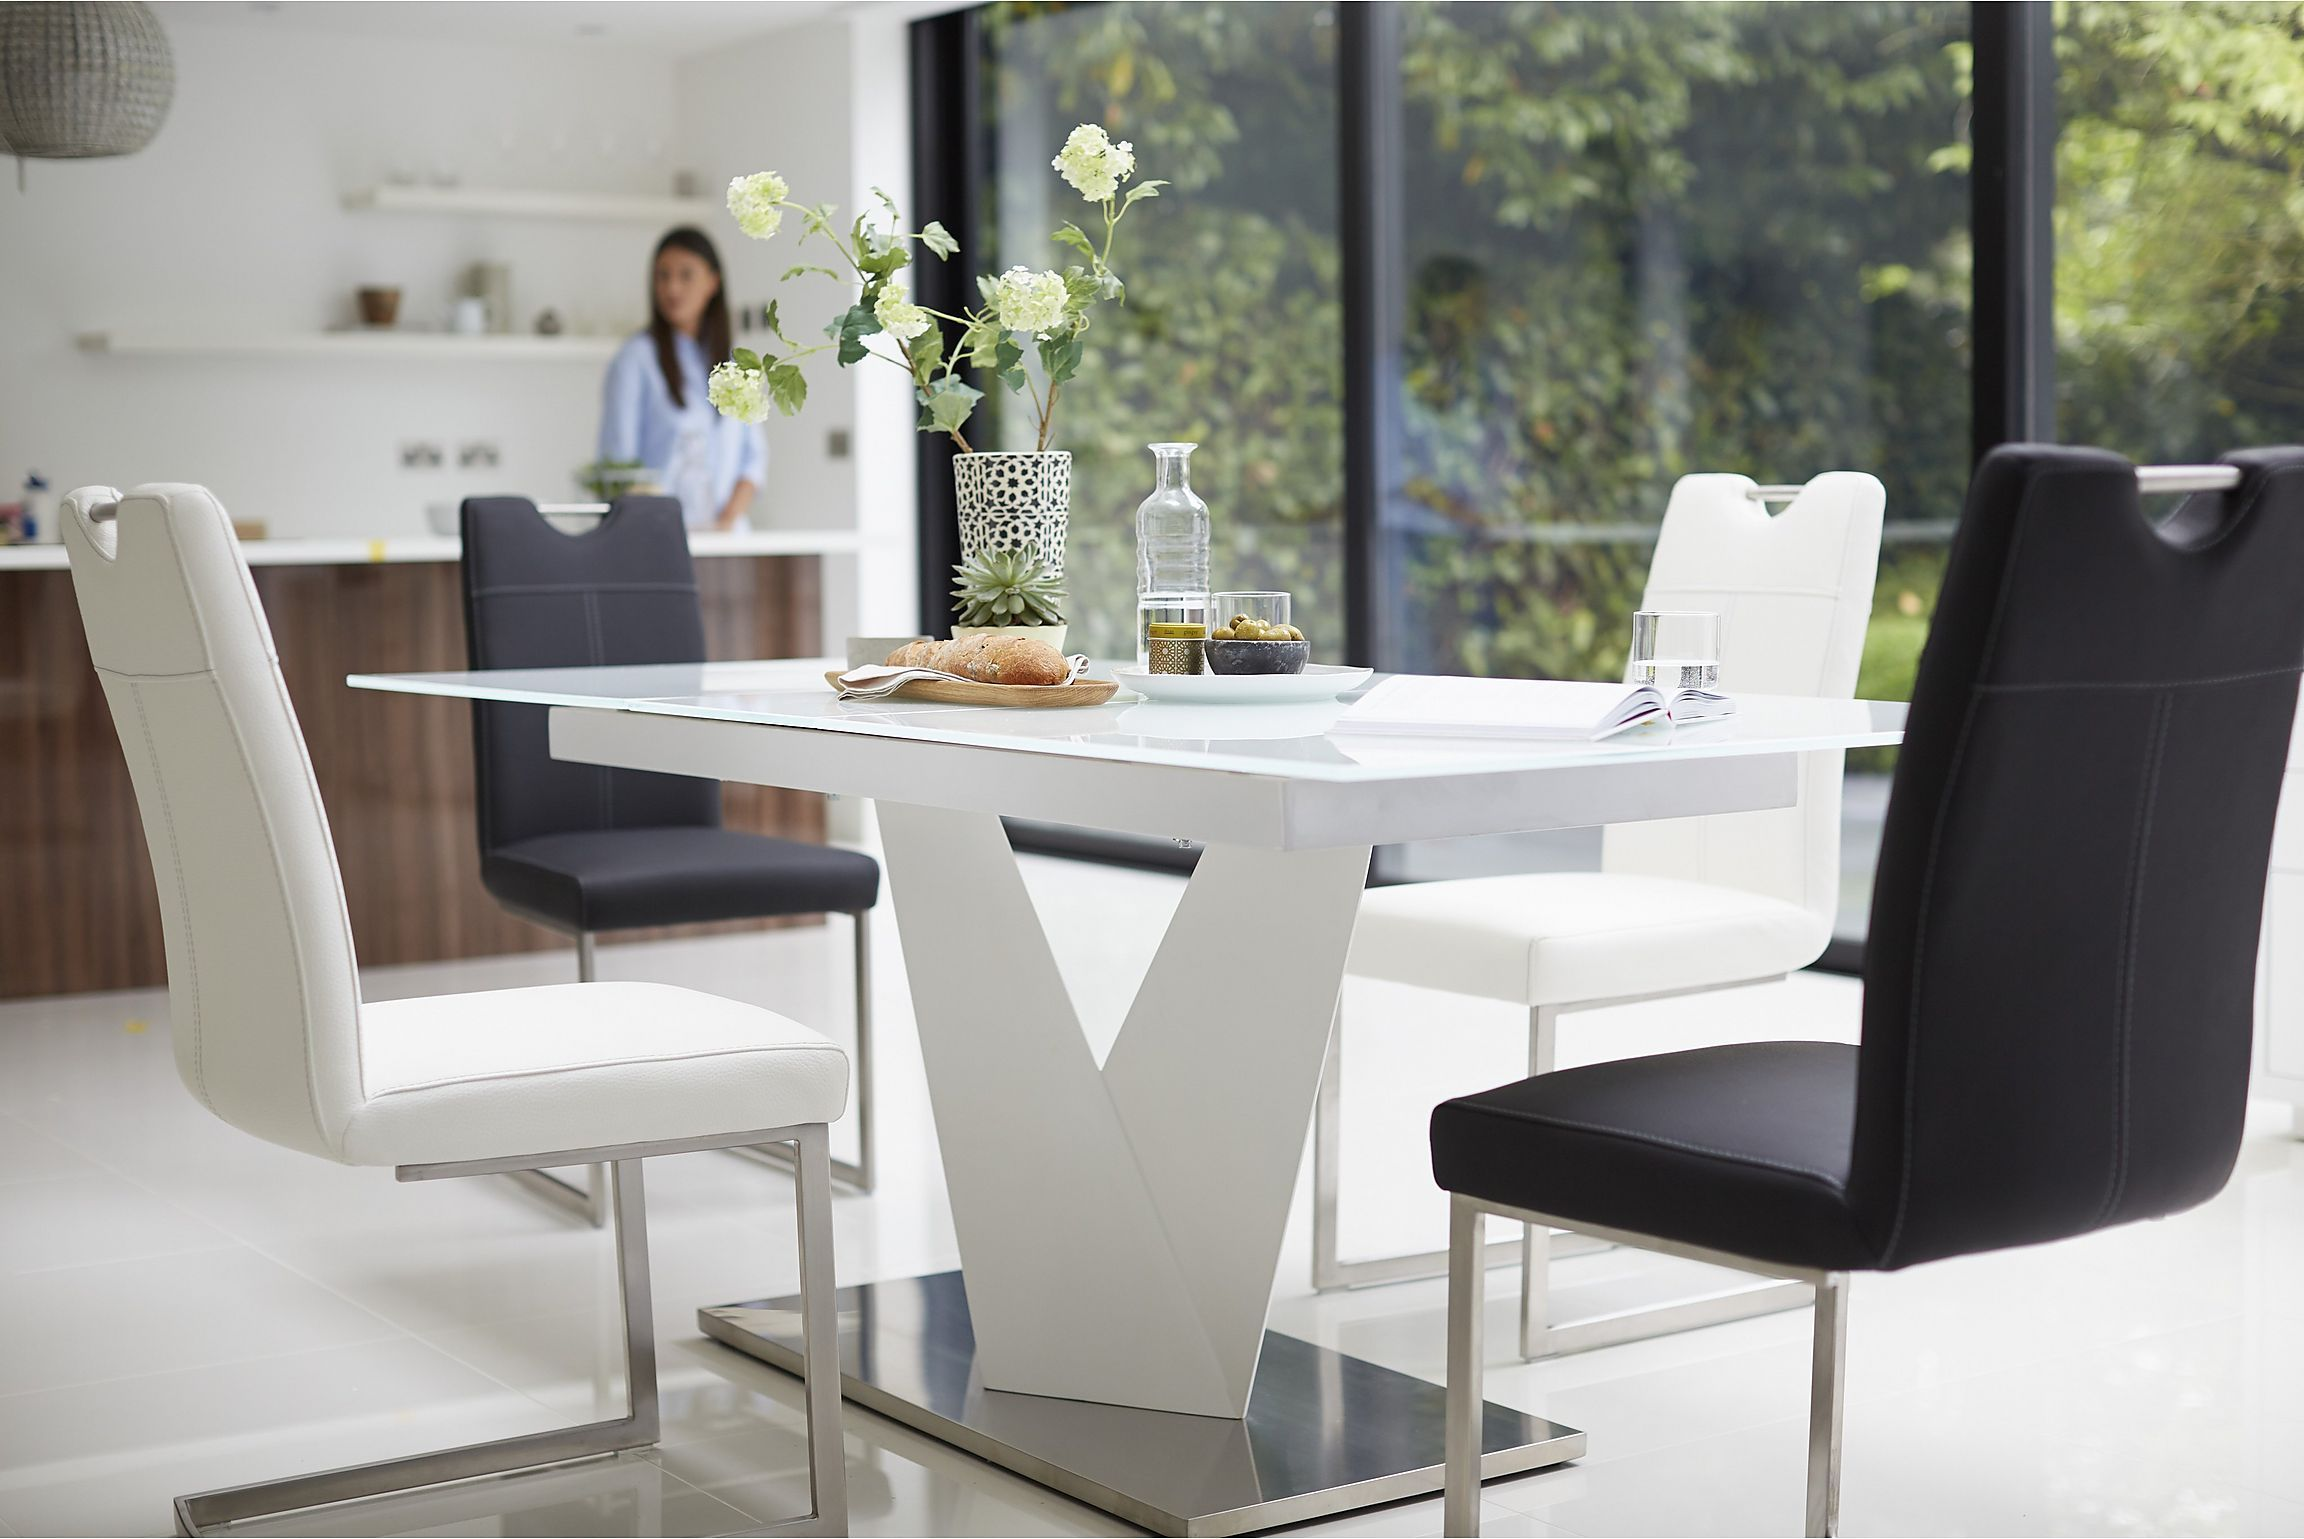 Extending Ultra Modern Dining Table From Habufa Sits Up To 8